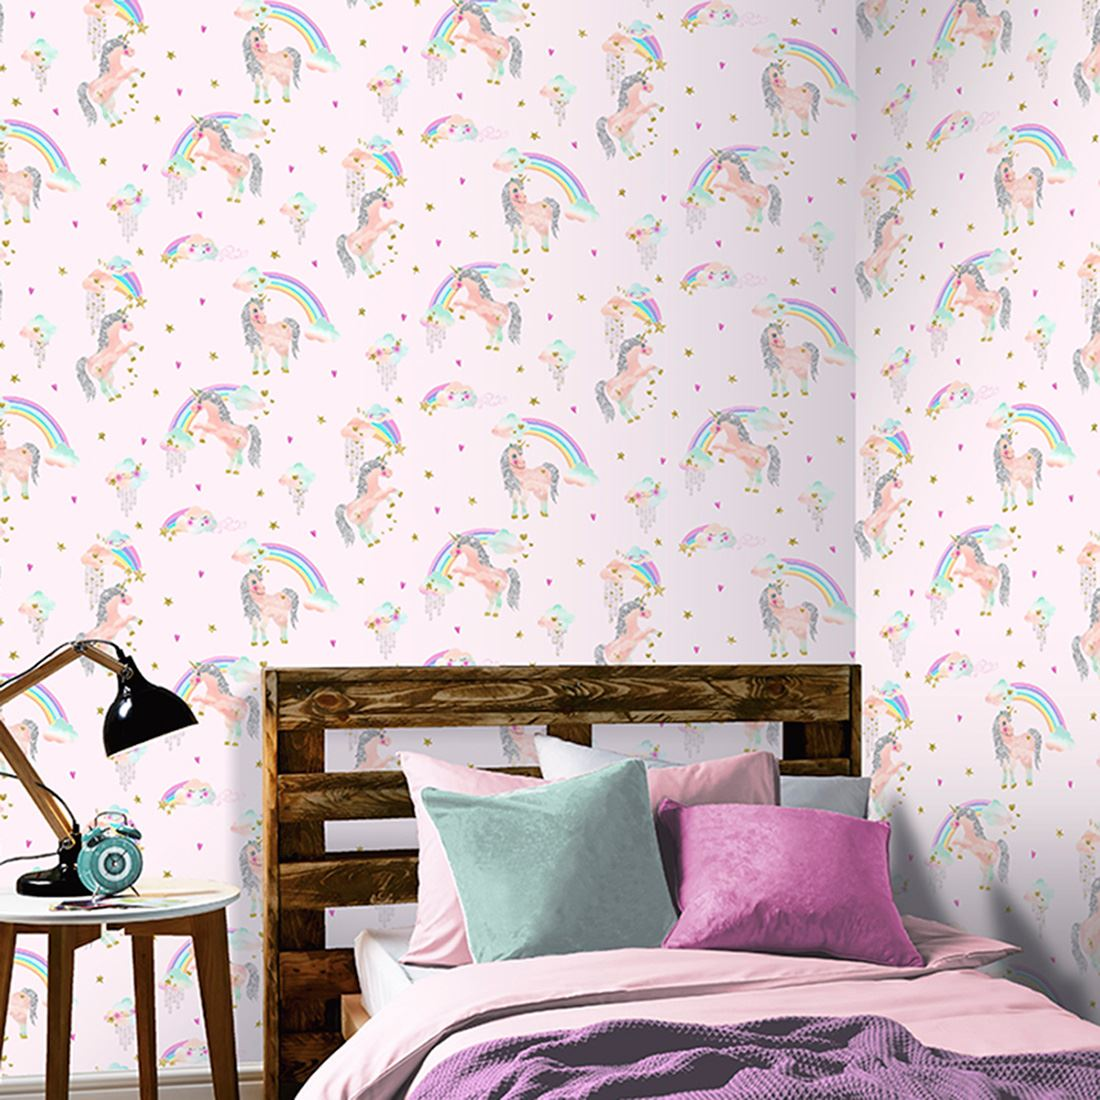 UNICORNS HORSES WALLPAPER KIDS GIRLS BEDROOM